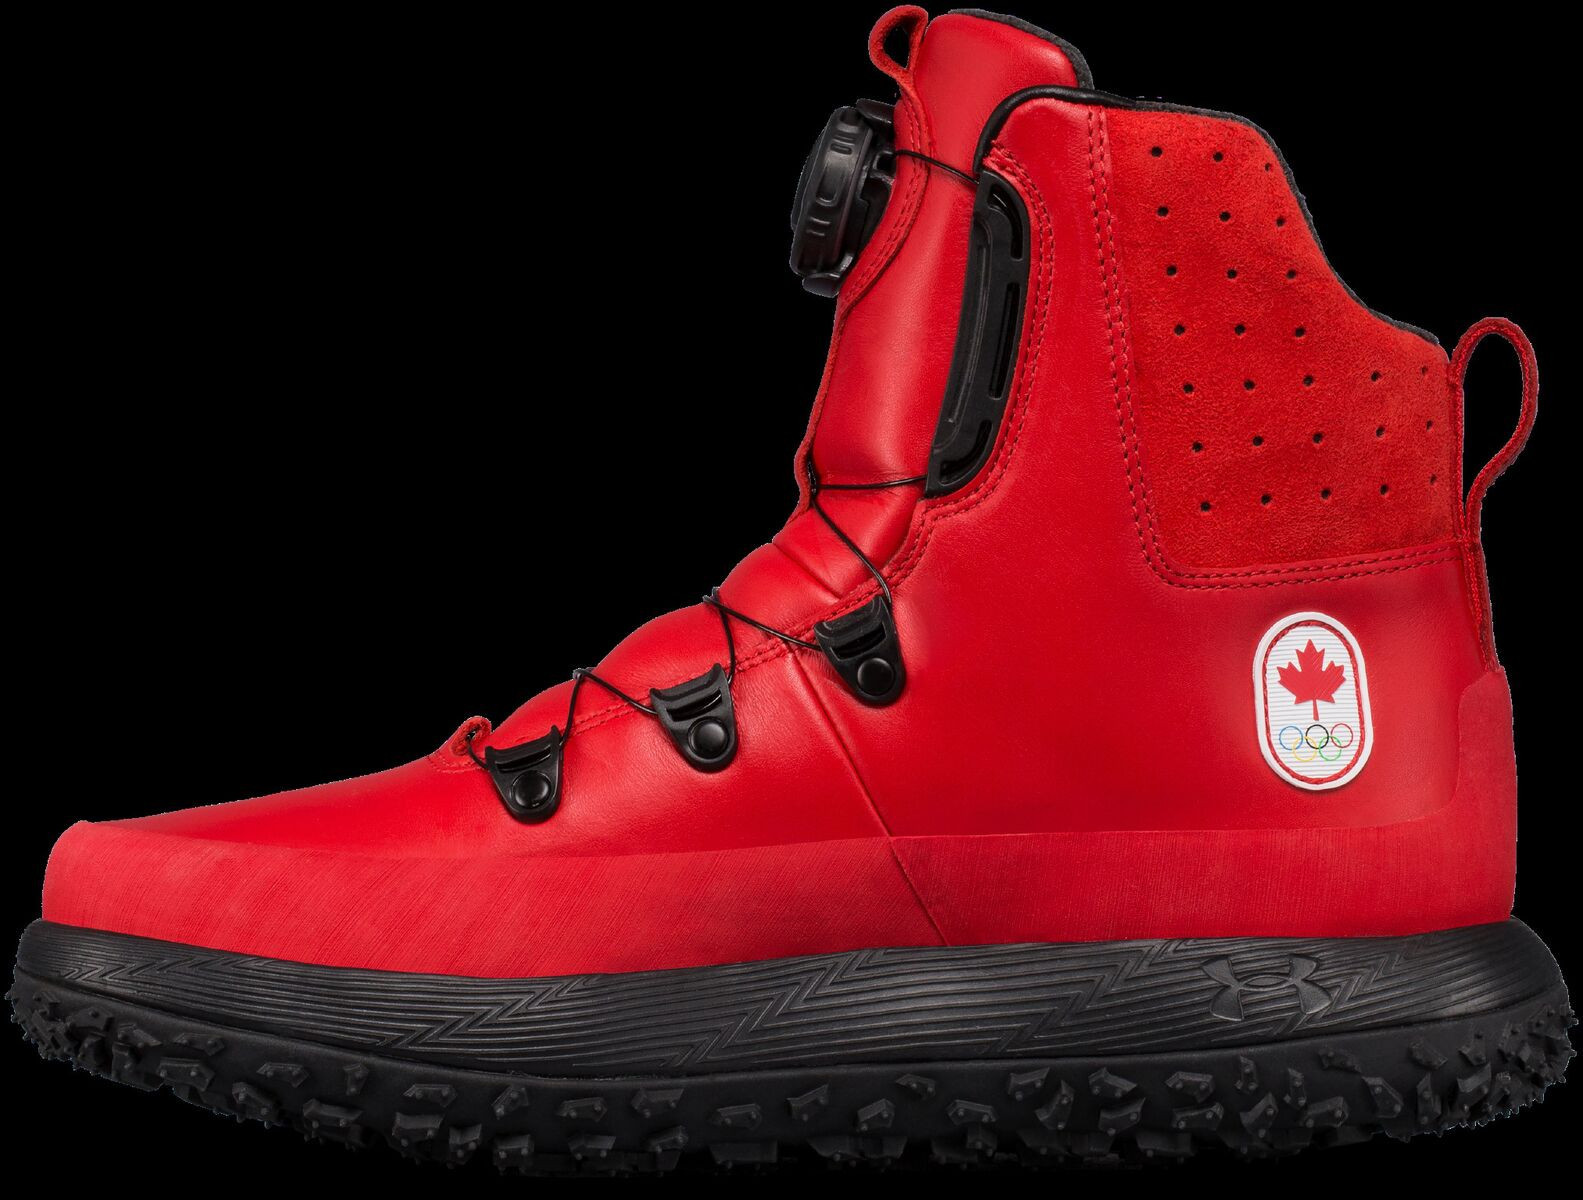 Canada's Olympic team athletes will be provided with Under Armour's Govie Boot ©Endeavor Global Marketing